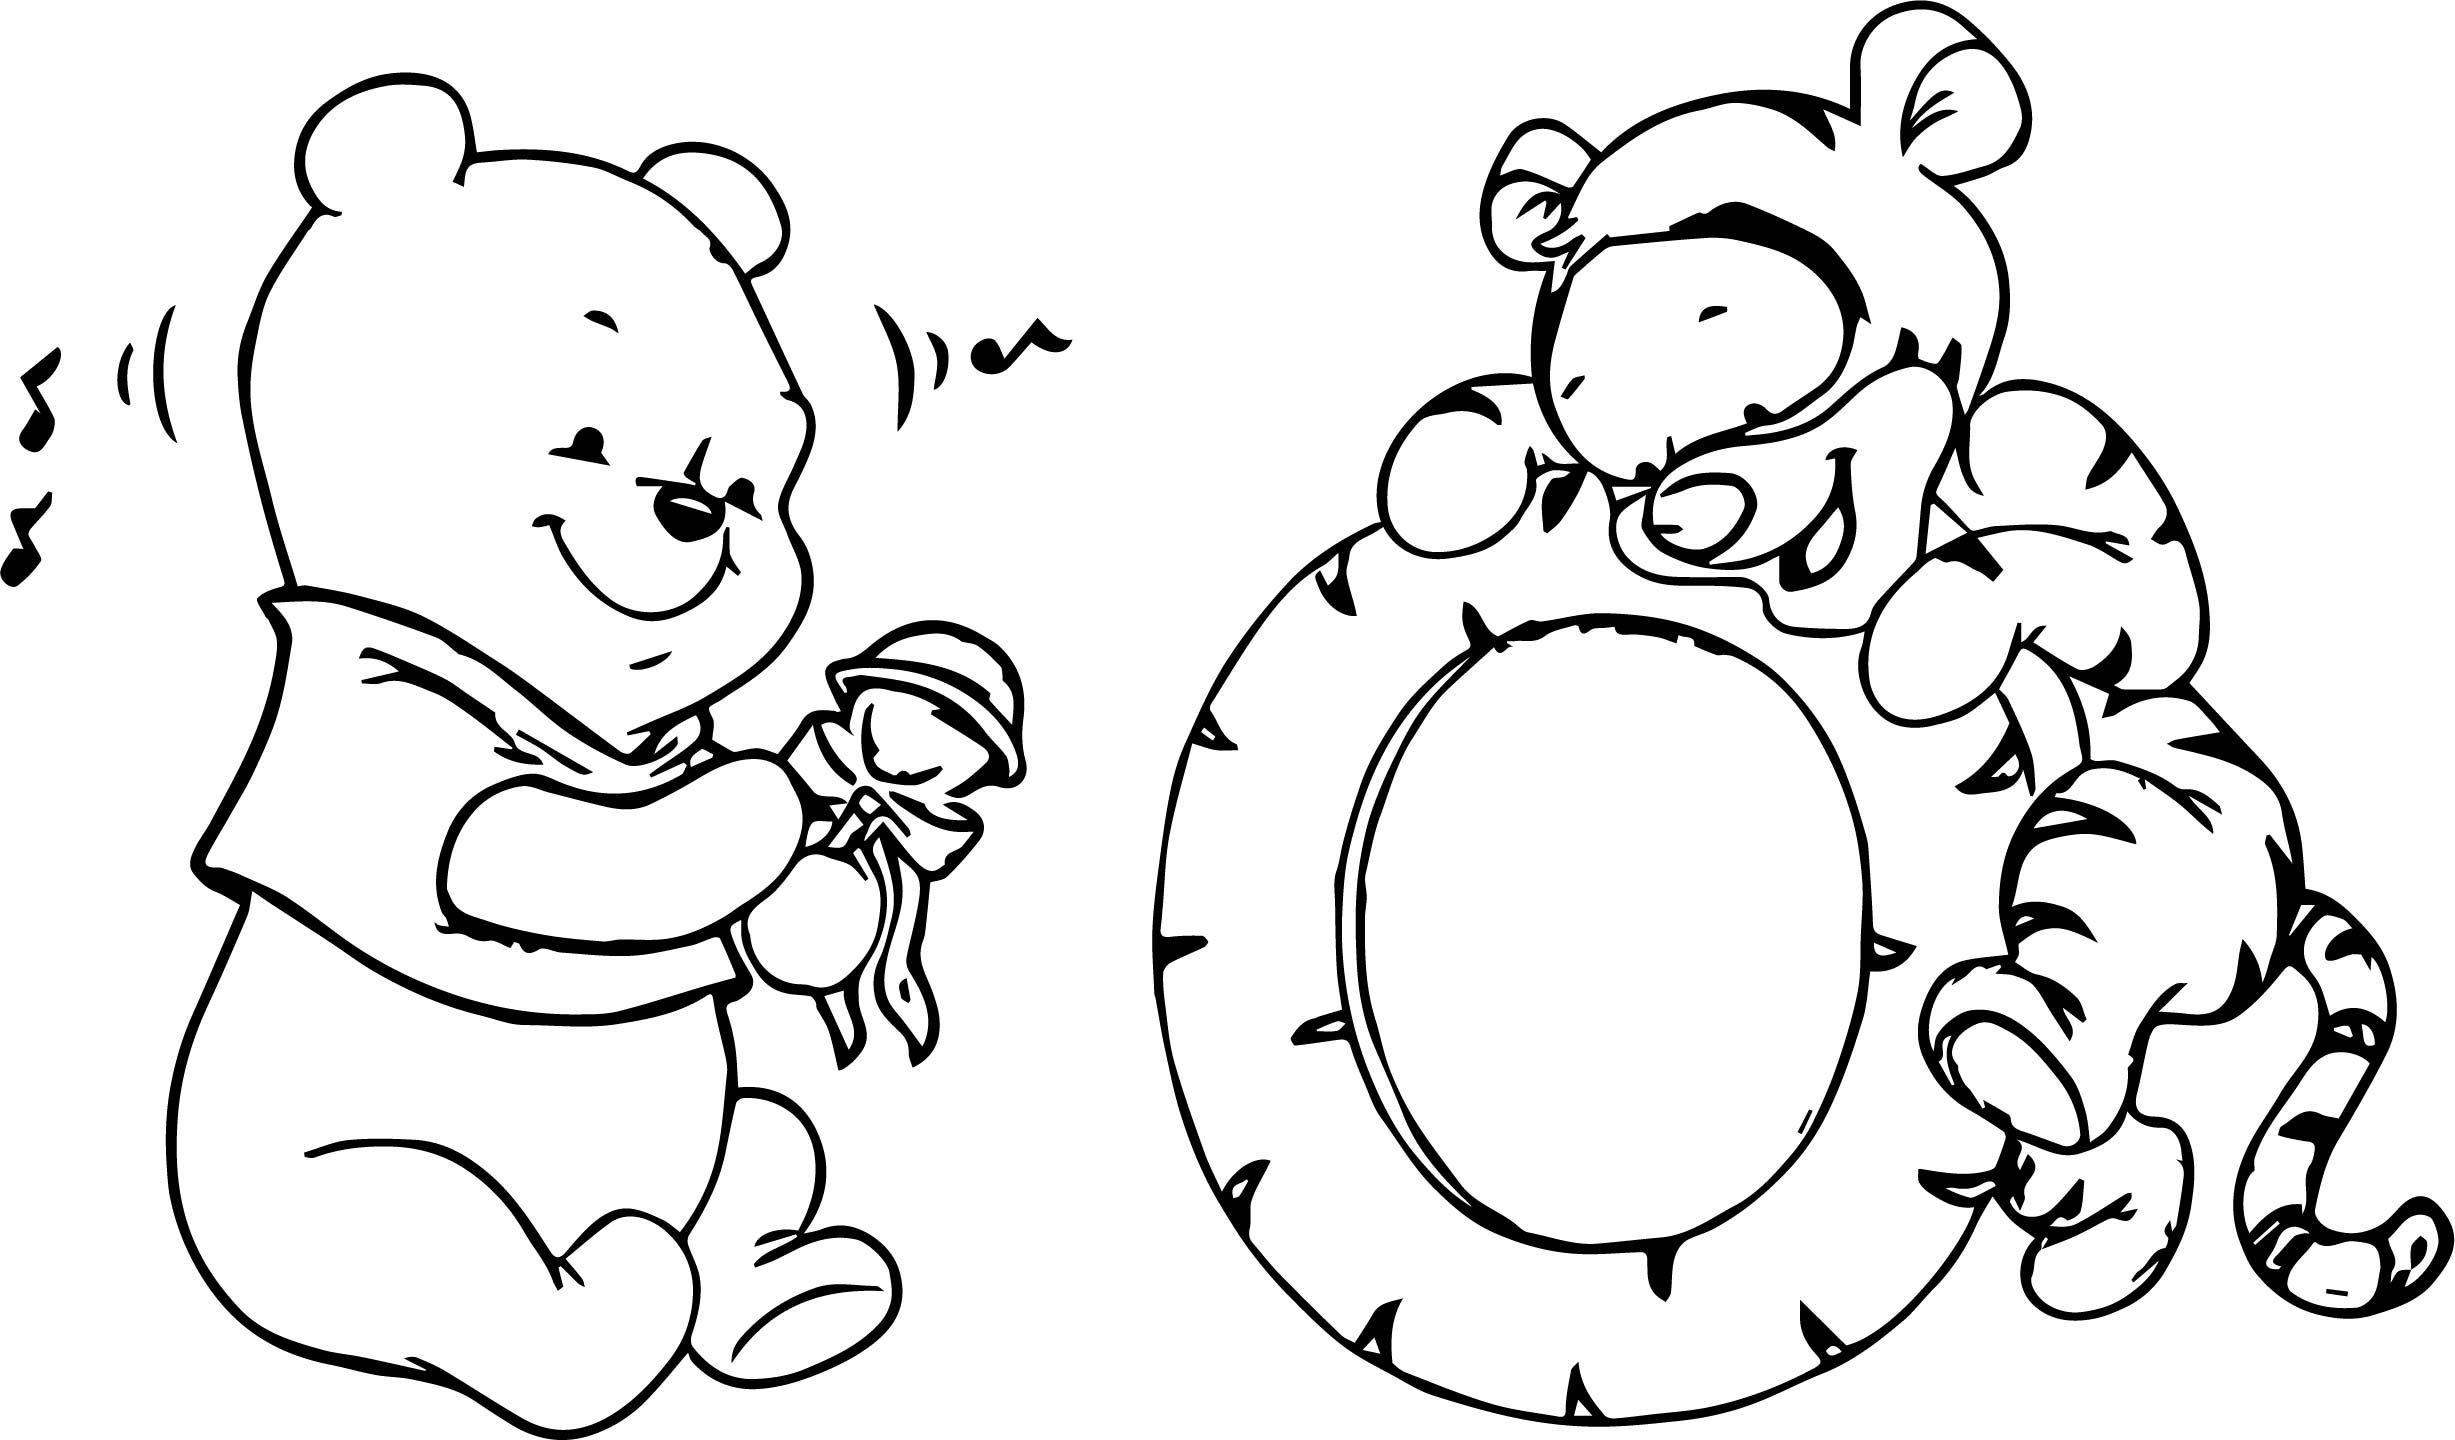 cool Baby Tigger Winnie The Pooh Music Coloring Page